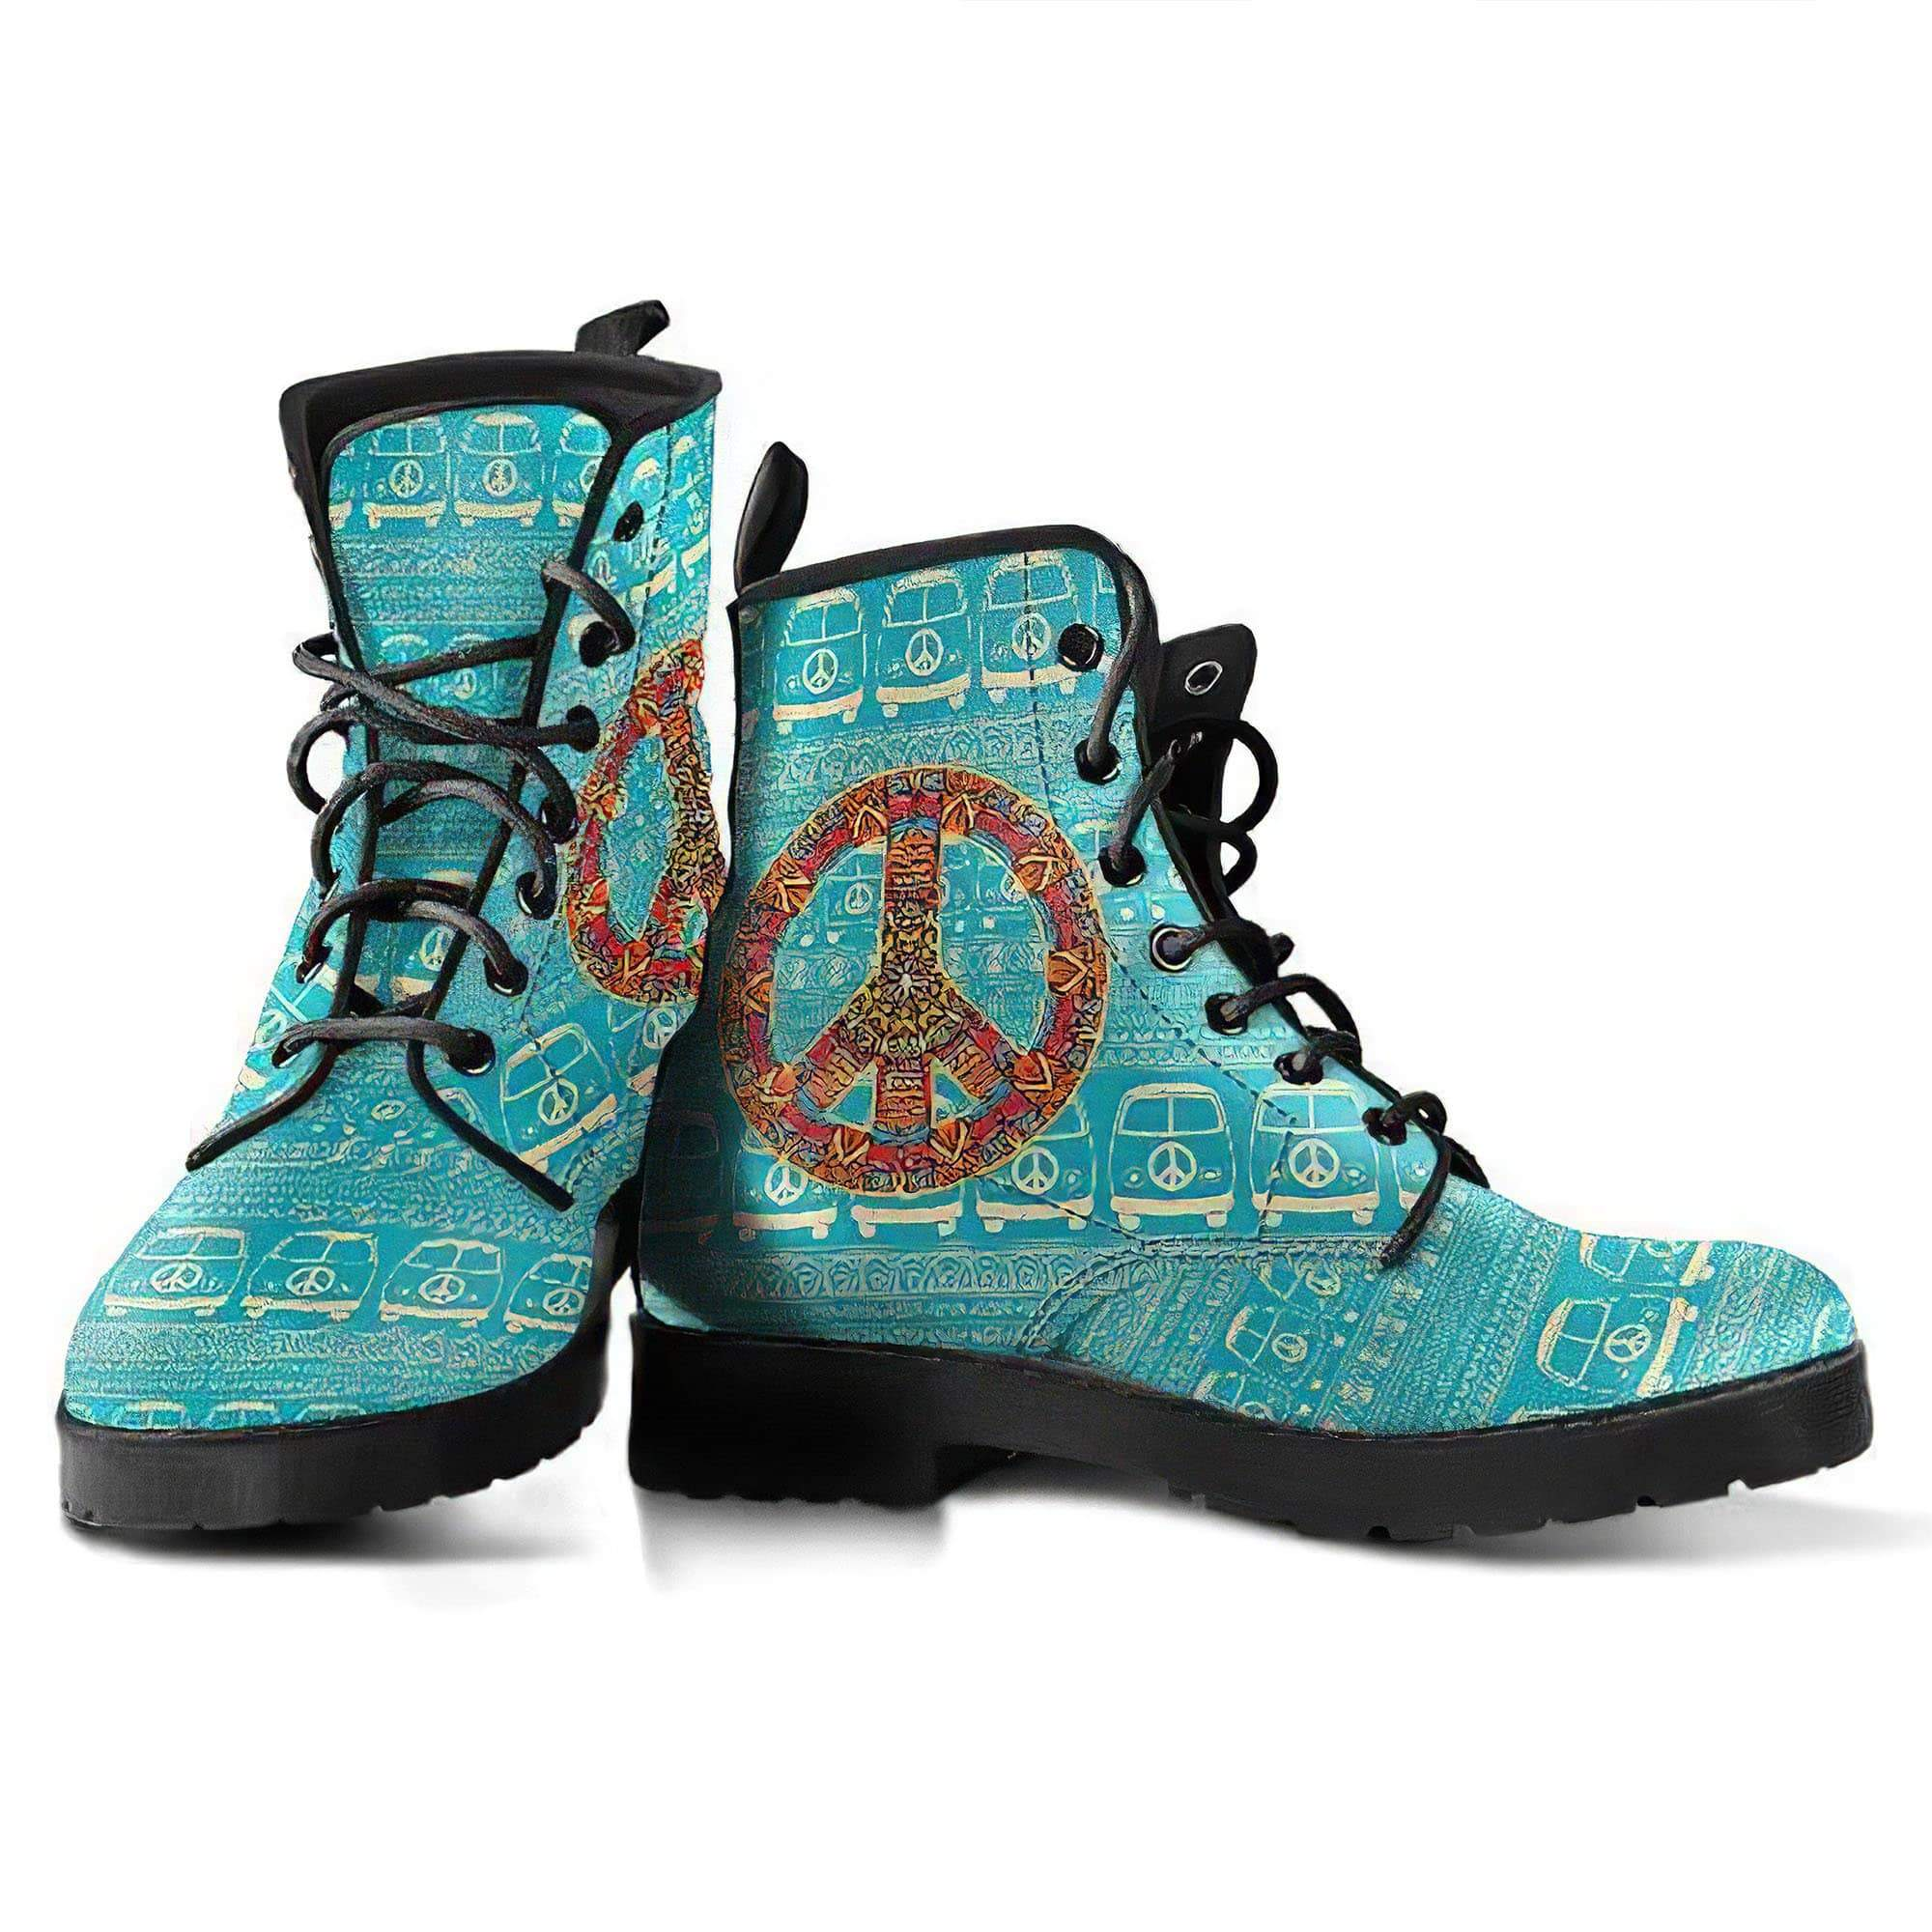 Peace Hippie Bus Handcrafted Boots Women's Leather Boots